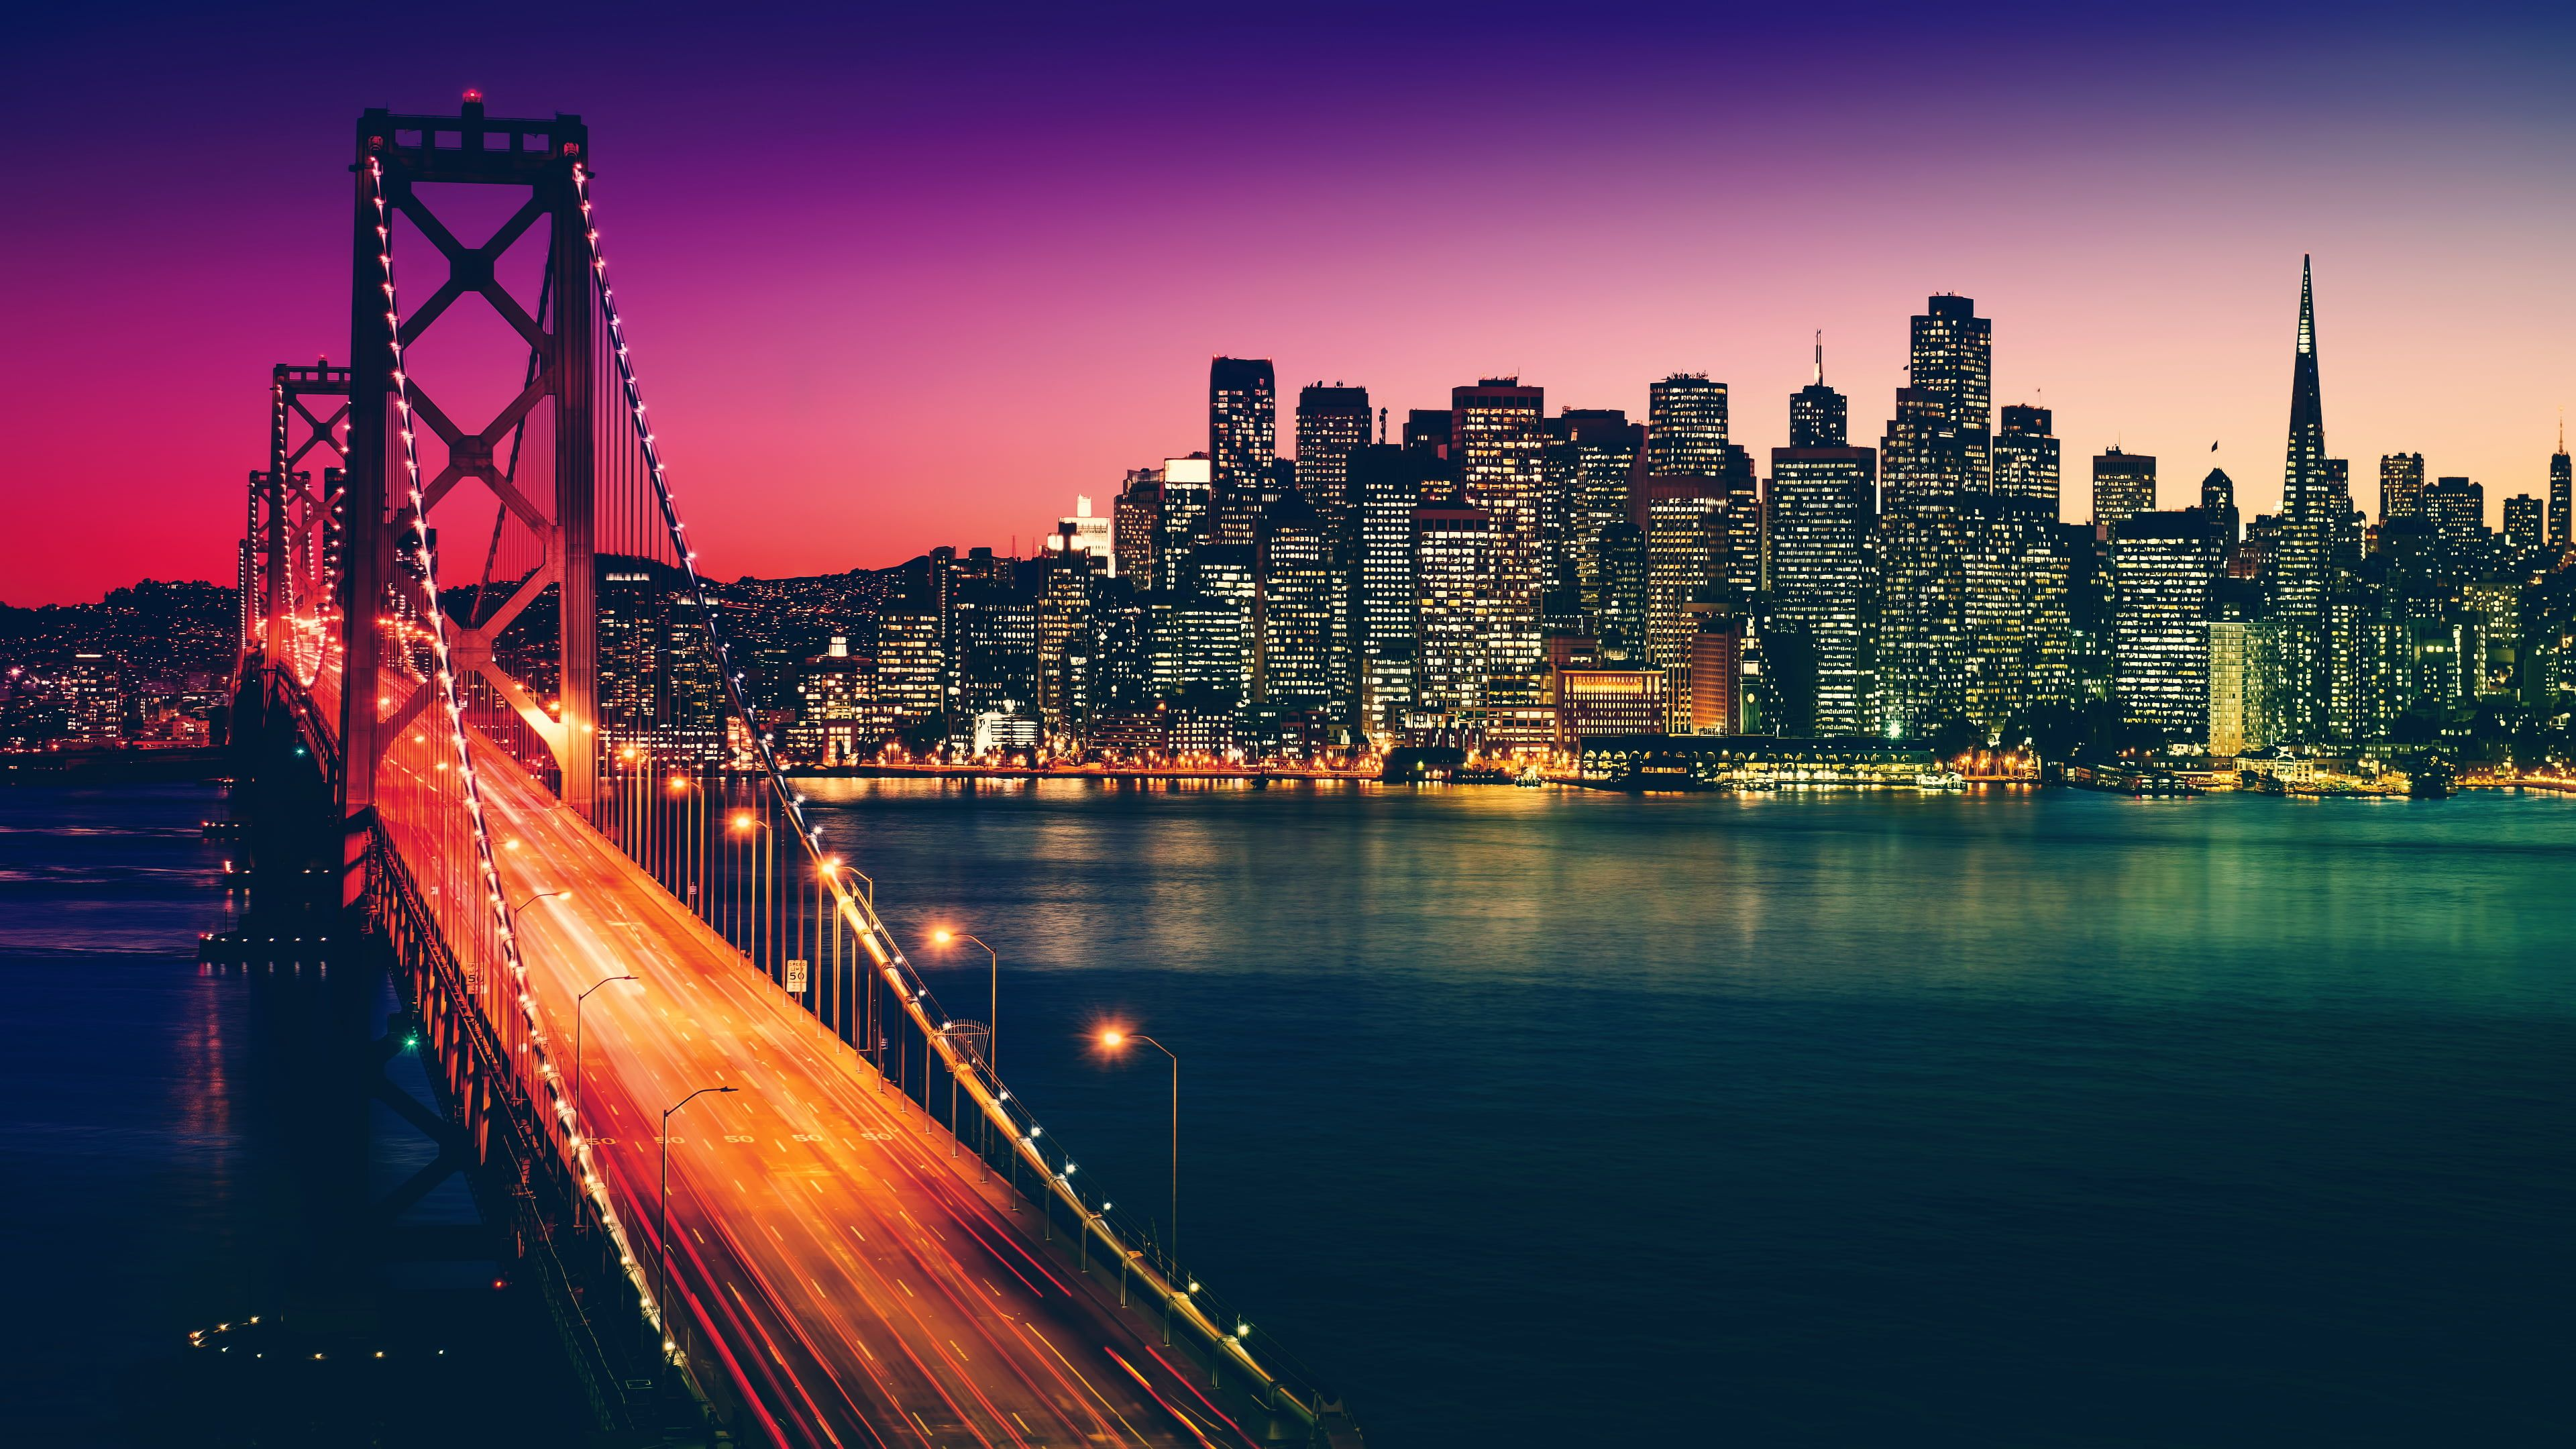 Places Golden Gate Bridge Night San Francisco Wallpapers Hd 4k Background For Android San Francisco Wallpaper 4k Background Background